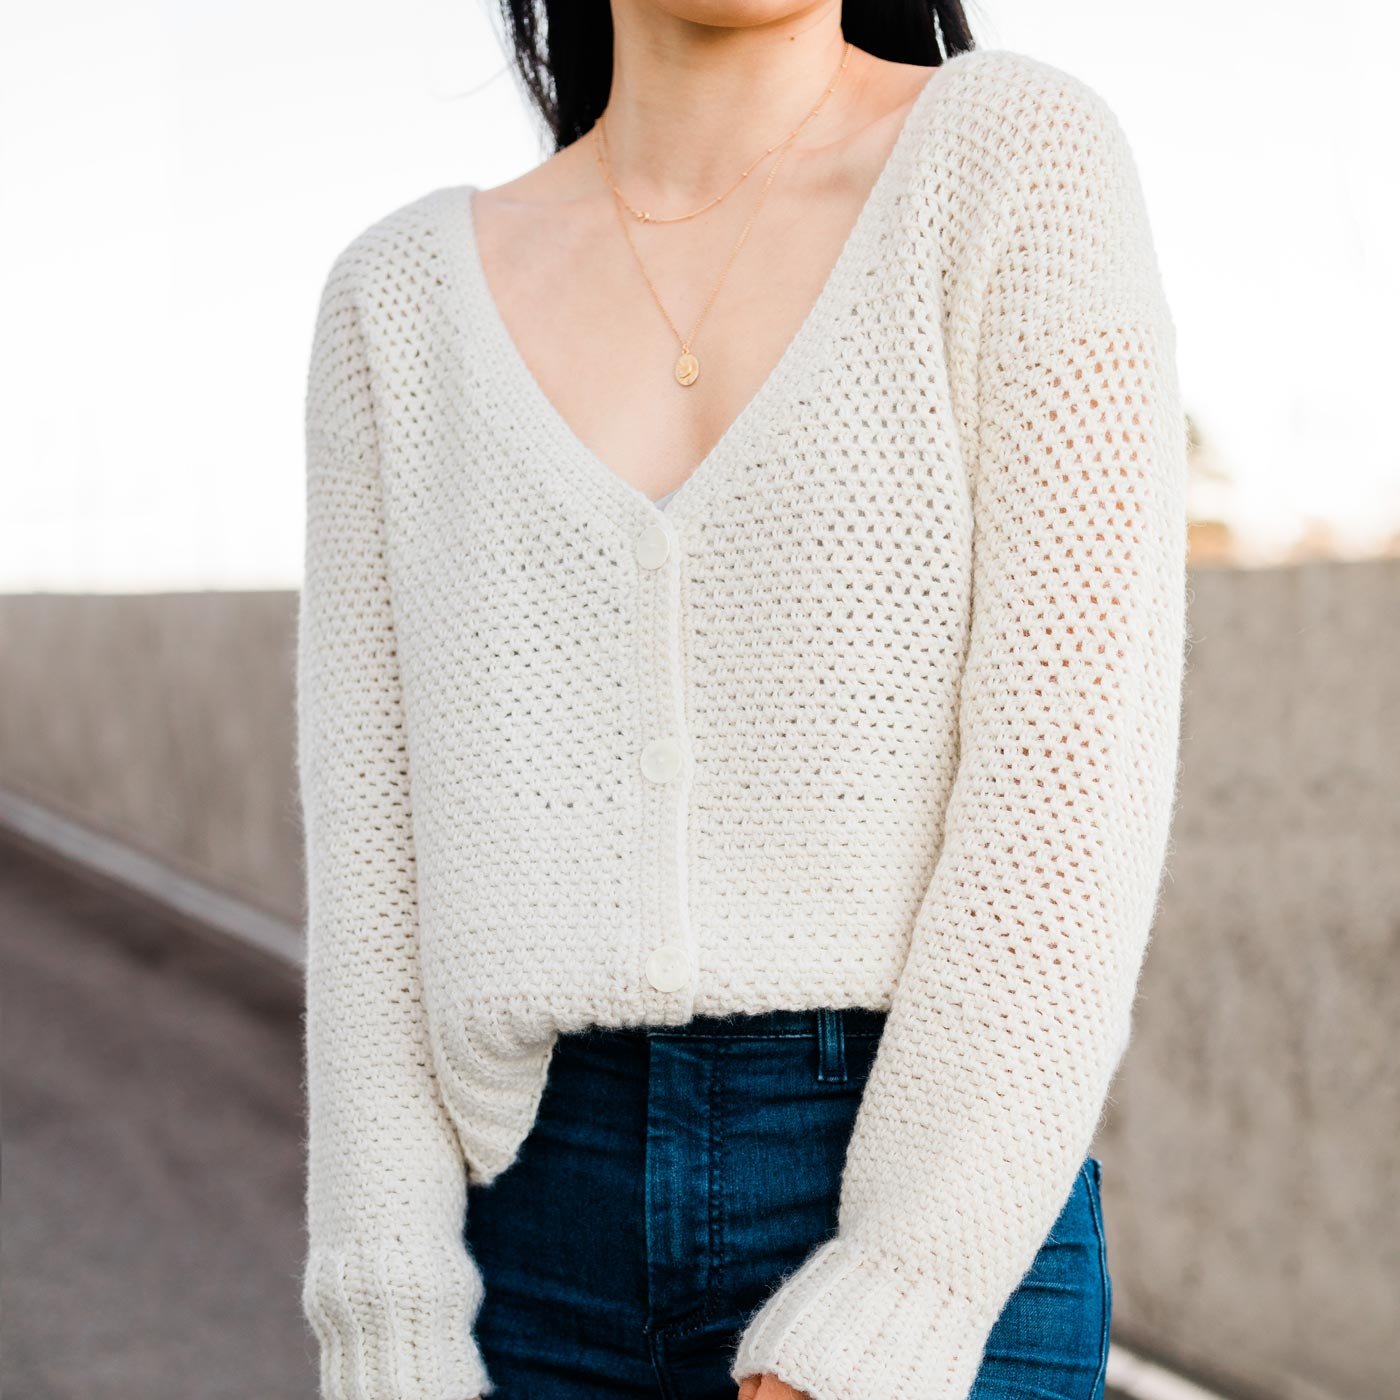 Button Down V Neck Cardigan Free Crochet Video For The Frills